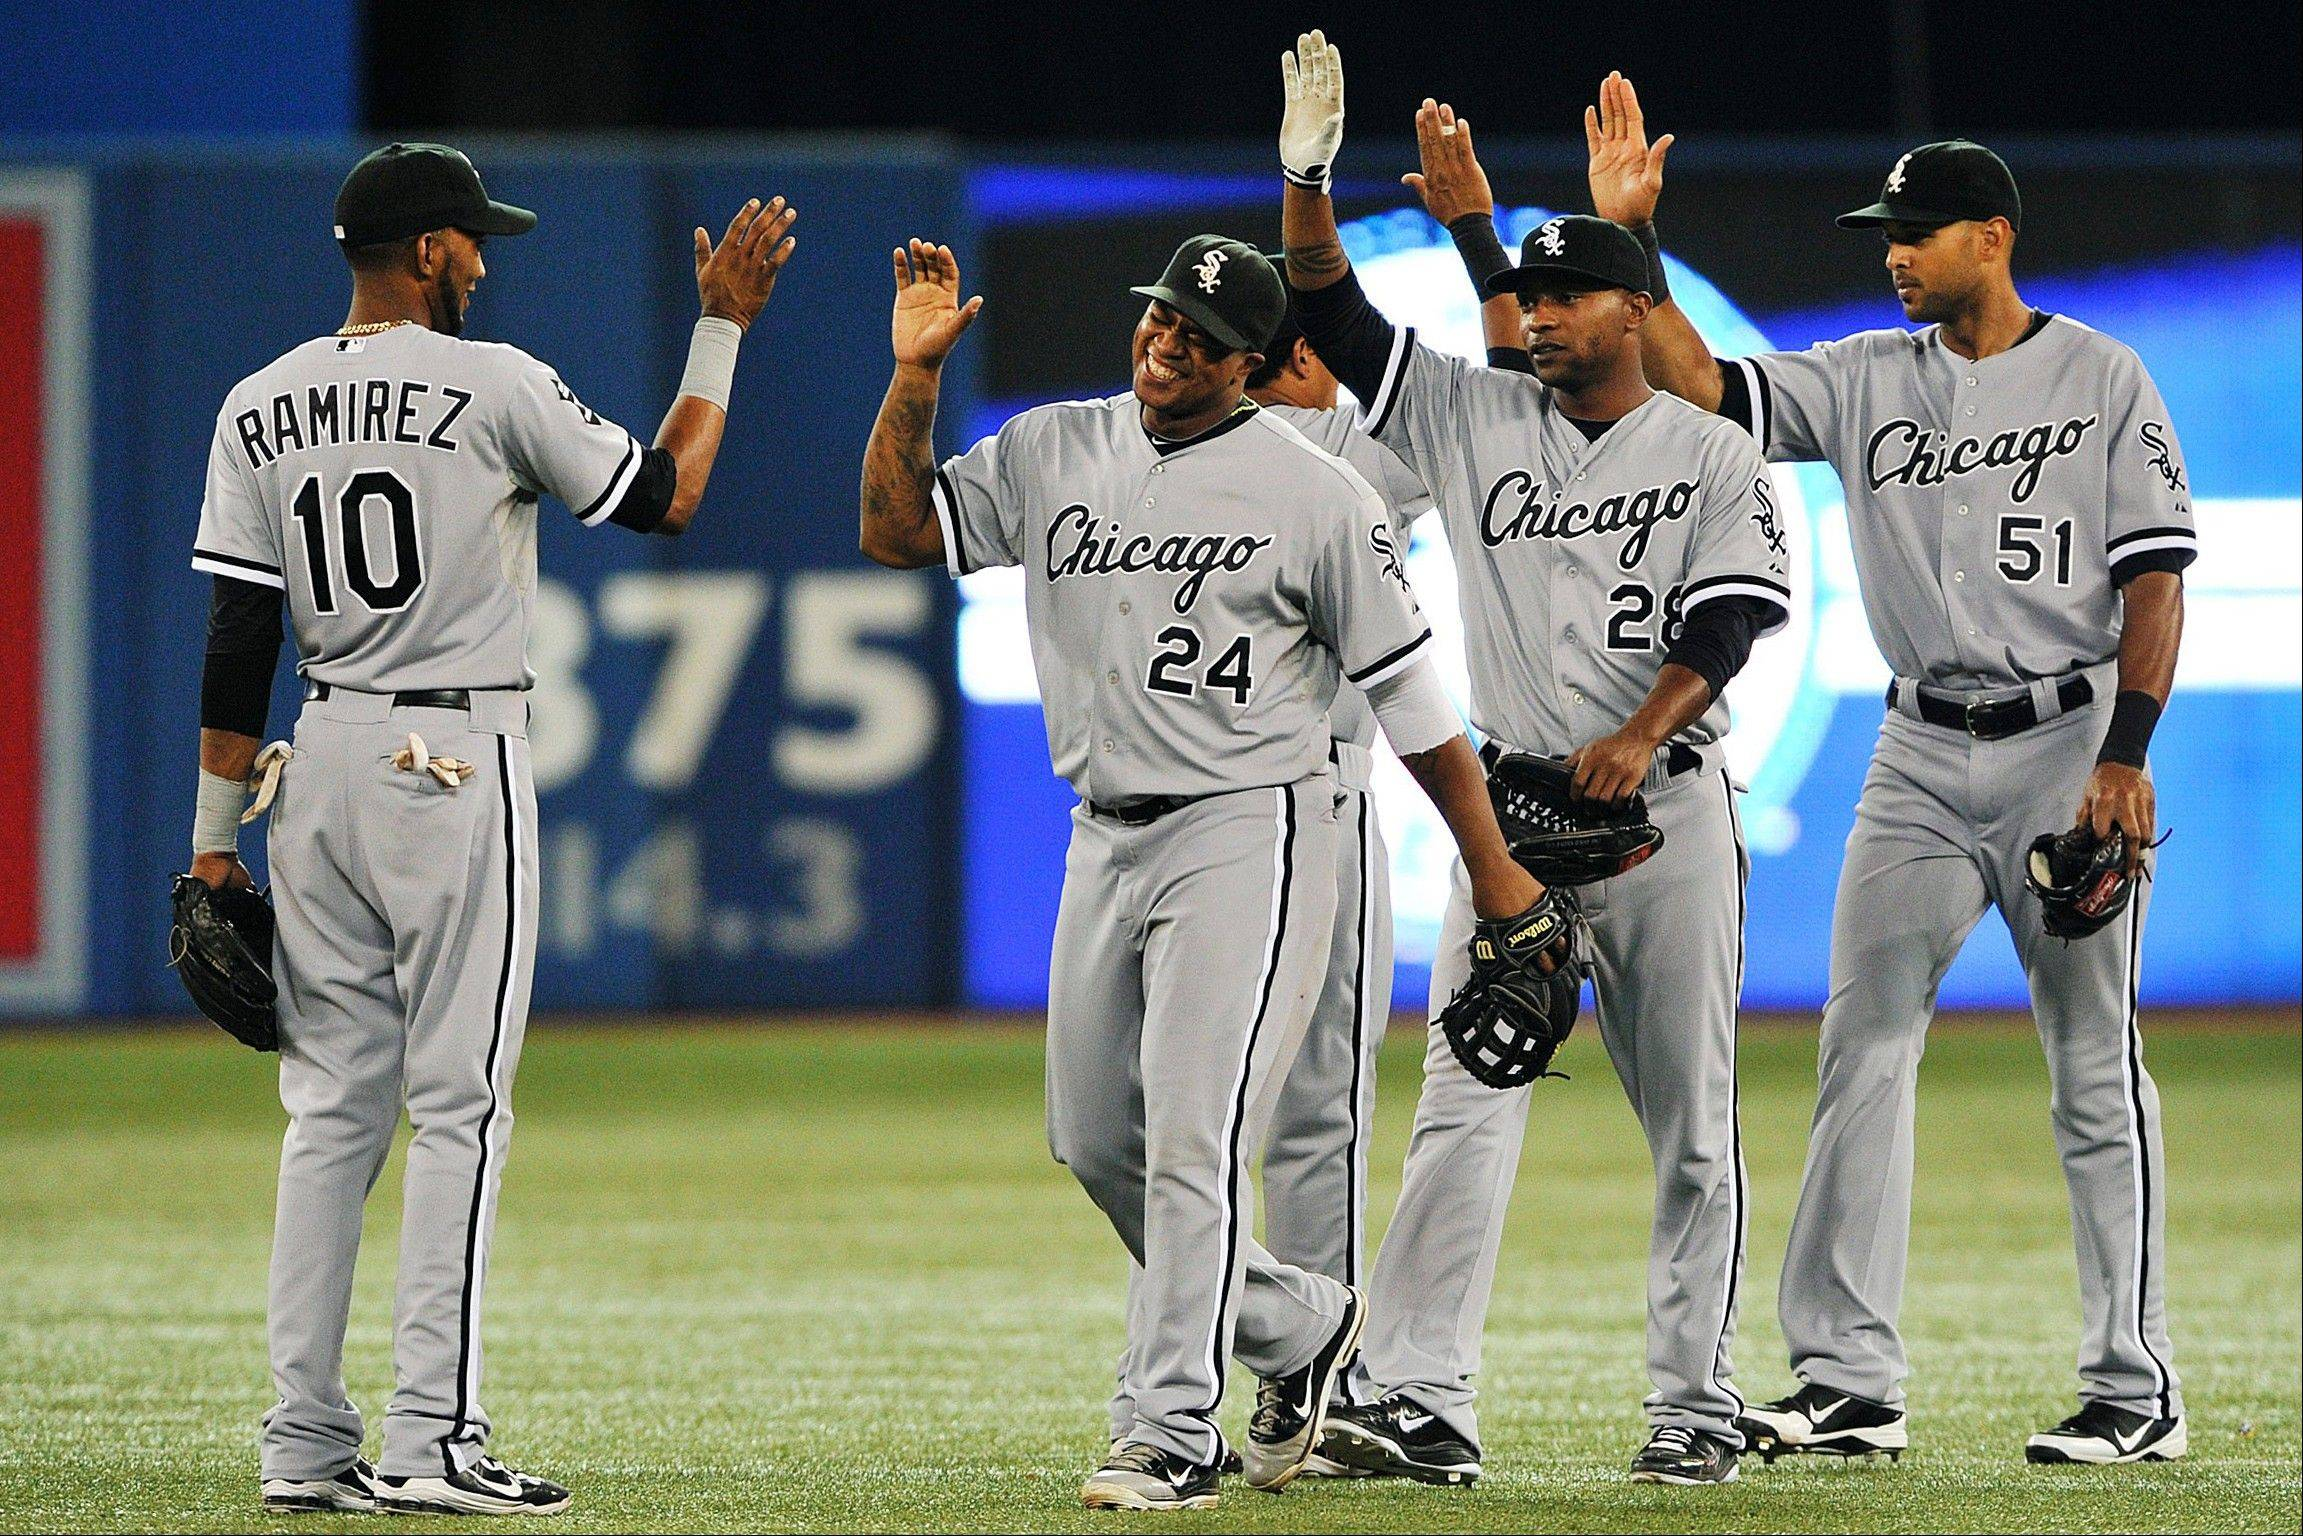 It's all looking real good for White Sox